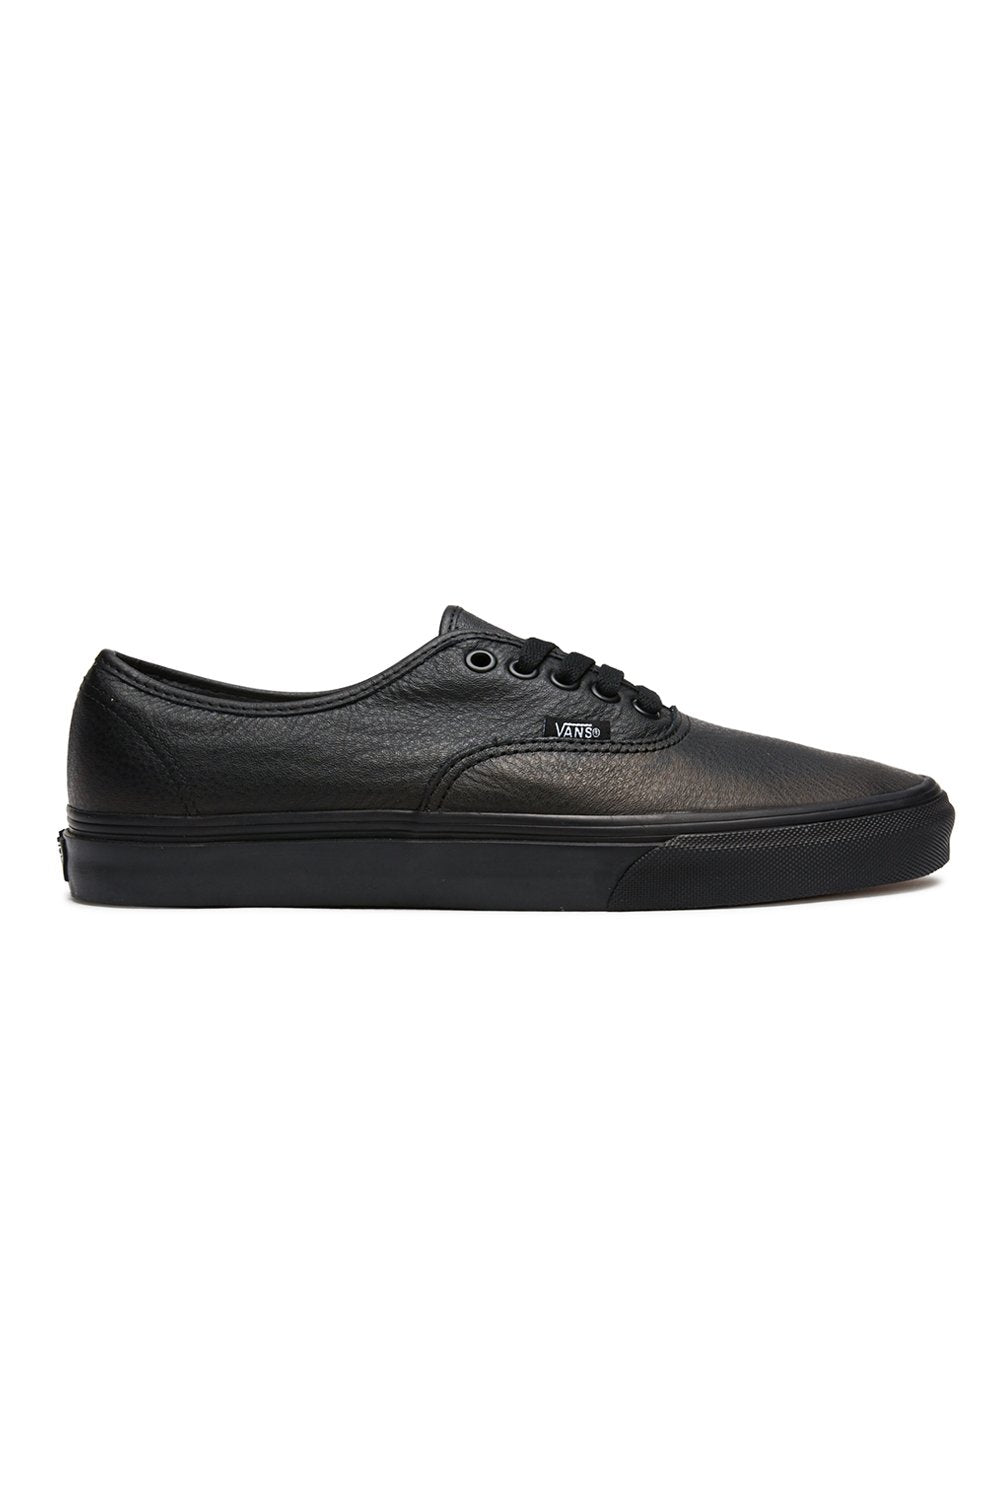 Vans Authentic (Leather) Shoes